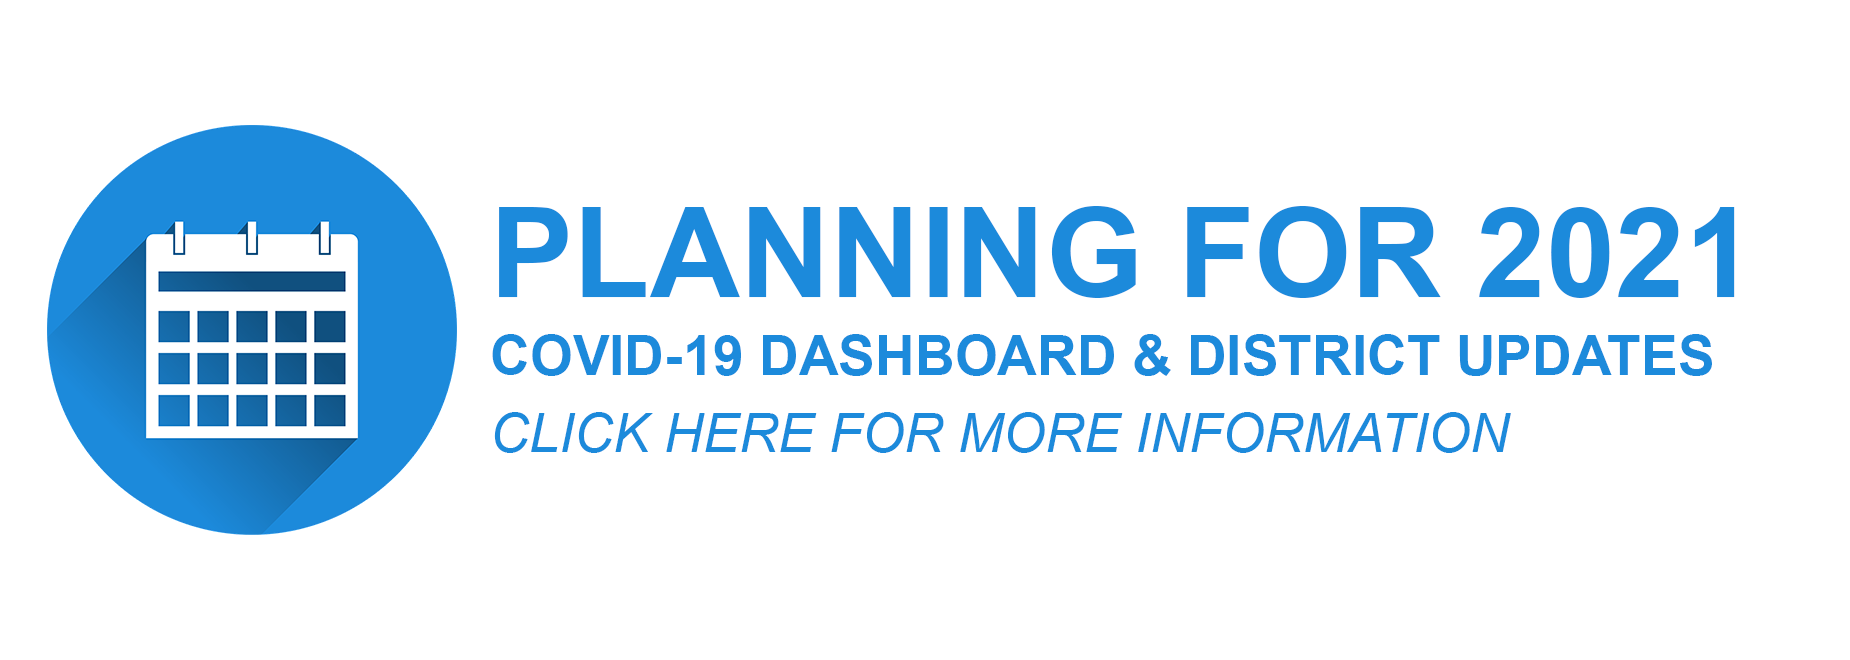 Planning for 2021 COVID-19 Dashboard and district updates click here for more information